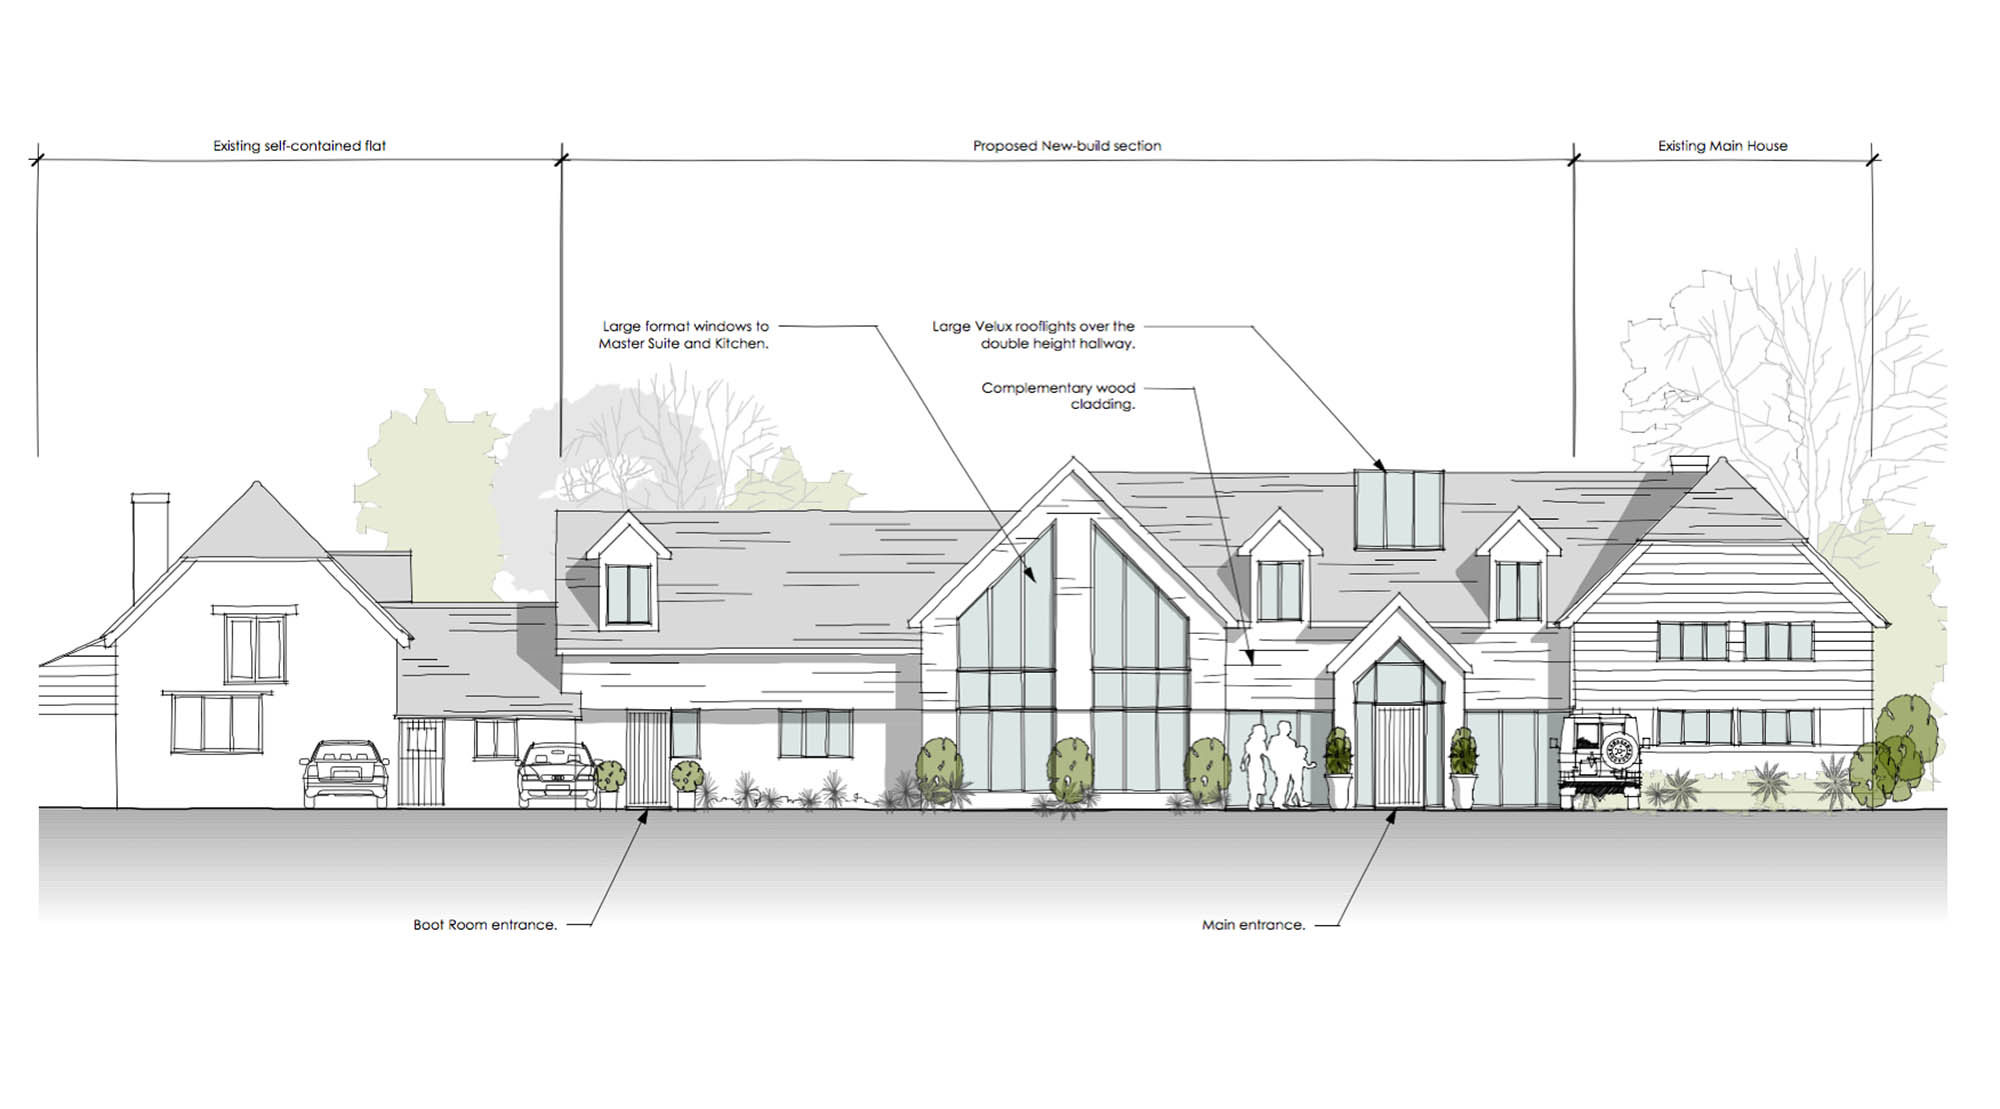 Front elevation proposed plan for Worcestershire Barn Conversion - main entrance, boot room entrance, large format windows for master-suite and kitchen, hallway rooflights